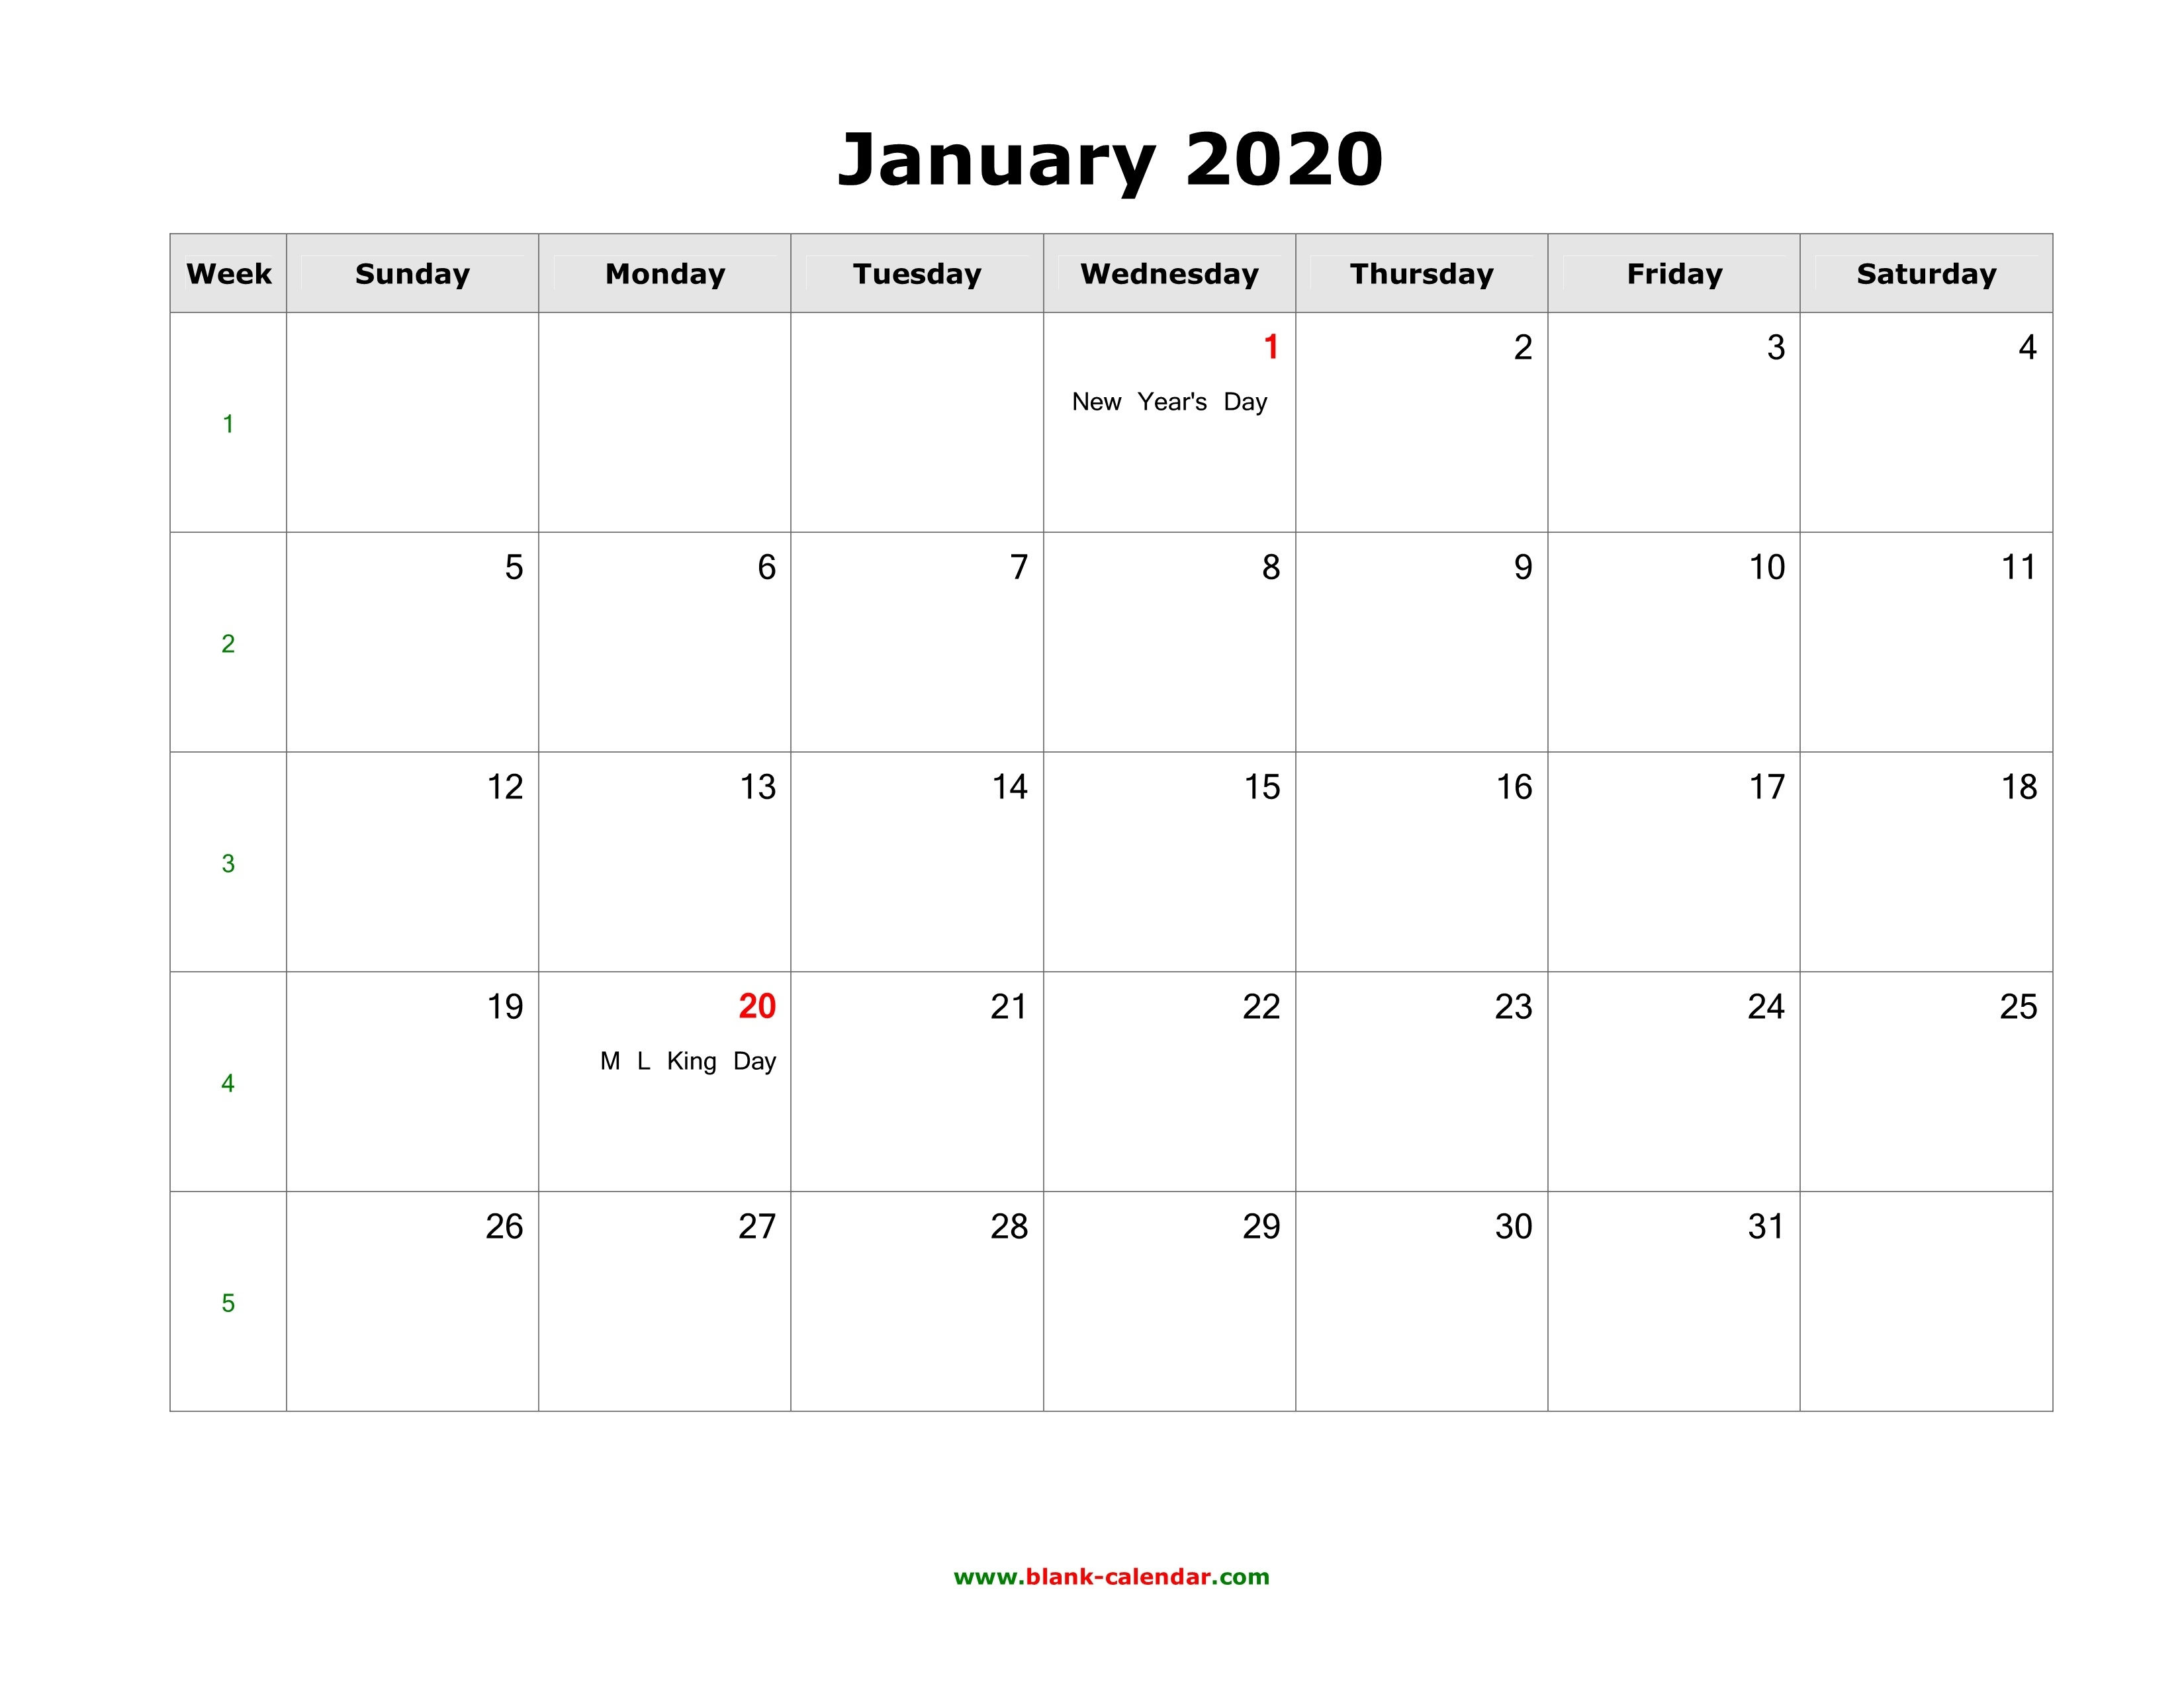 Download January 2020 Blank Calendar With Us Holidays (Horizontal)_Blank Calendar December 2020 And January 2020